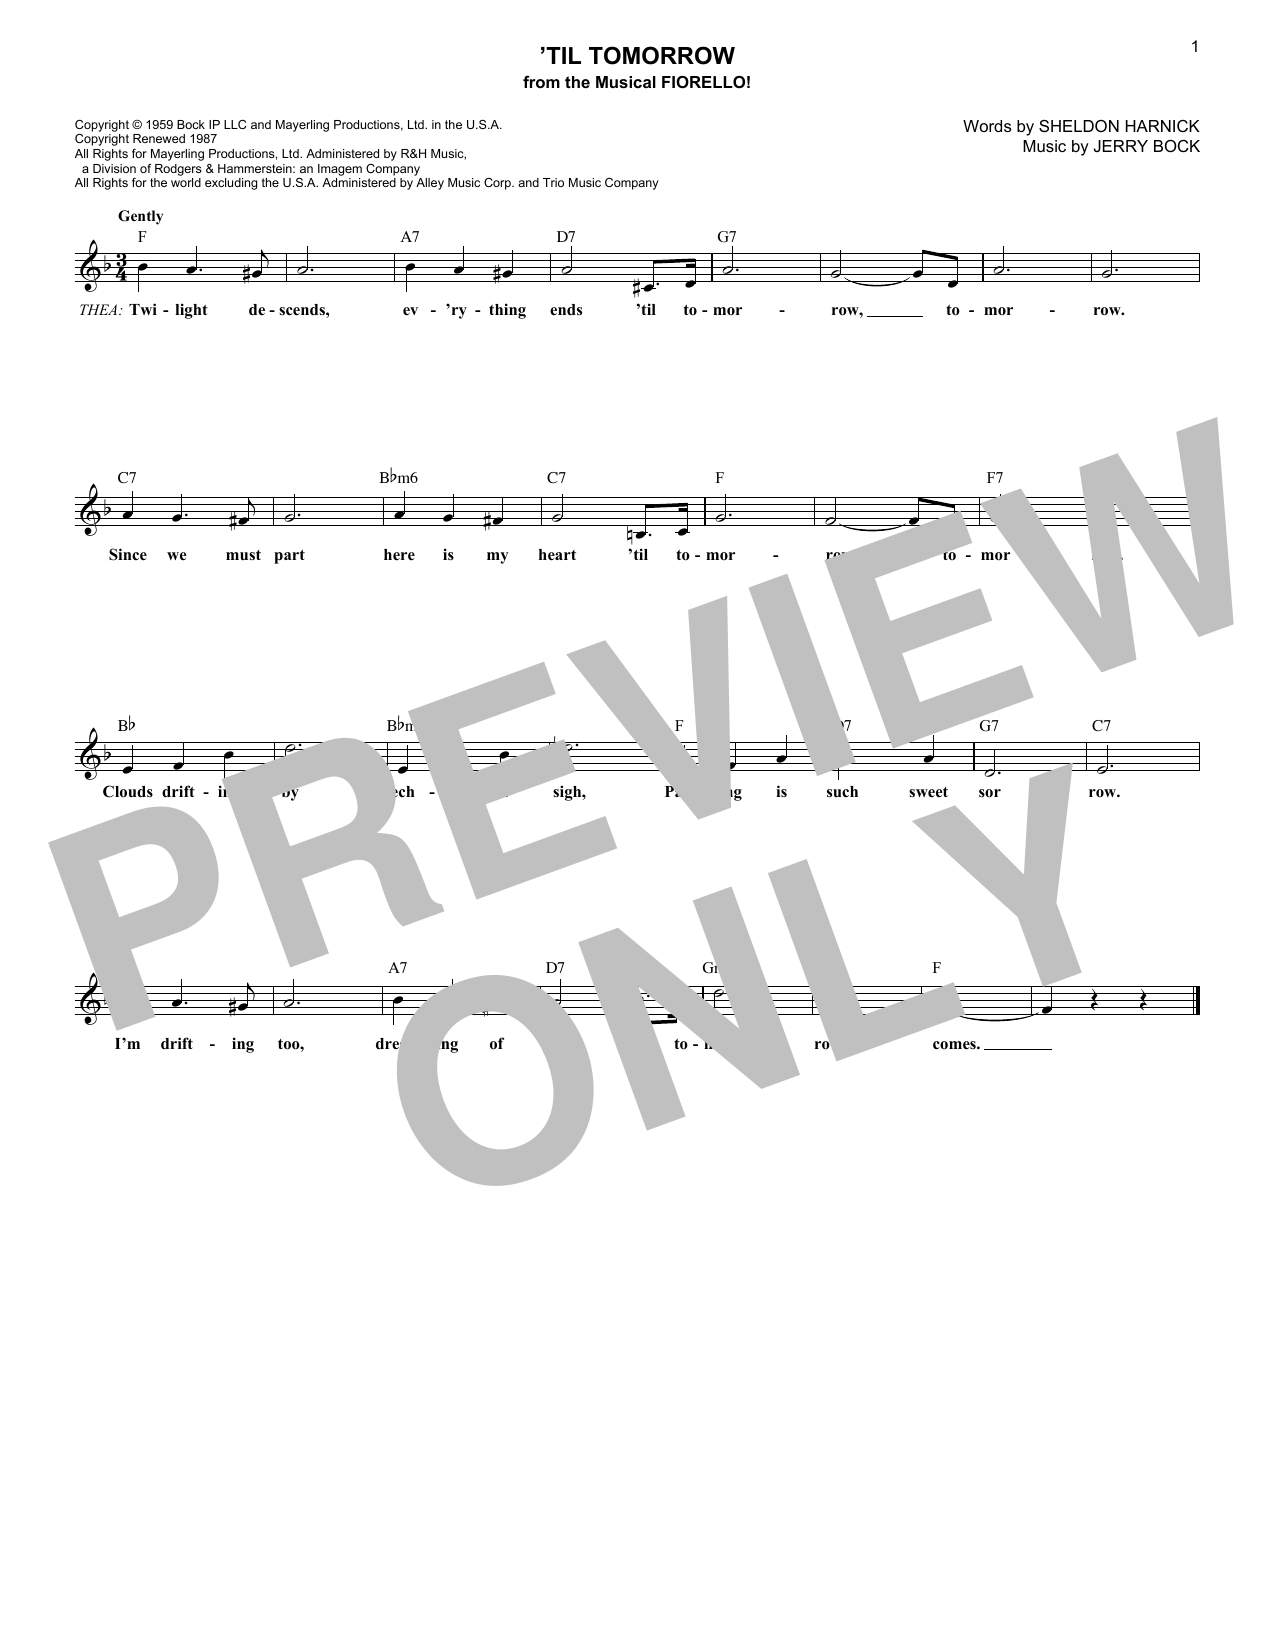 Jerry Bock 'Til Tomorrow sheet music notes and chords. Download Printable PDF.